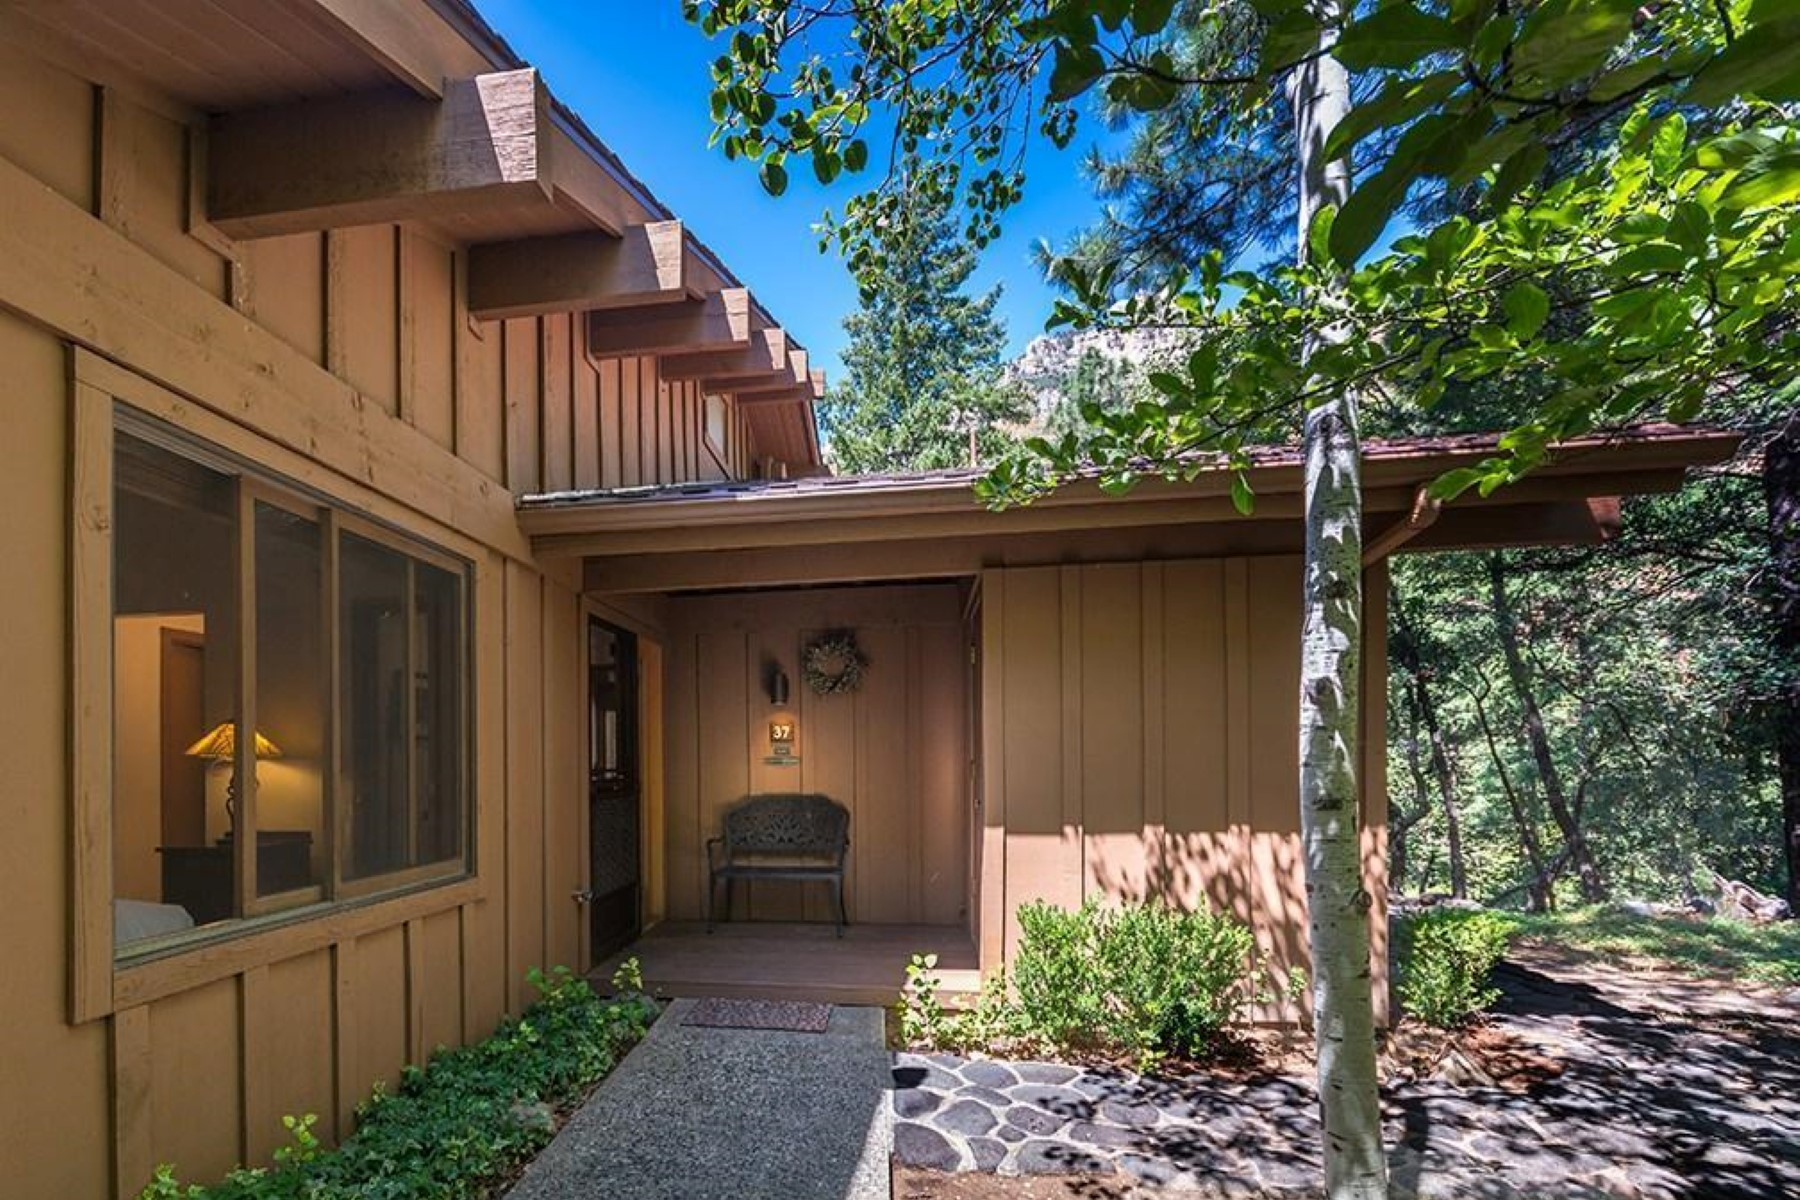 Single Family Home for Sale at Lovely townhome perched on top of a hill 8351 N State Route 89a 37 Sedona, Arizona, 86336 United States